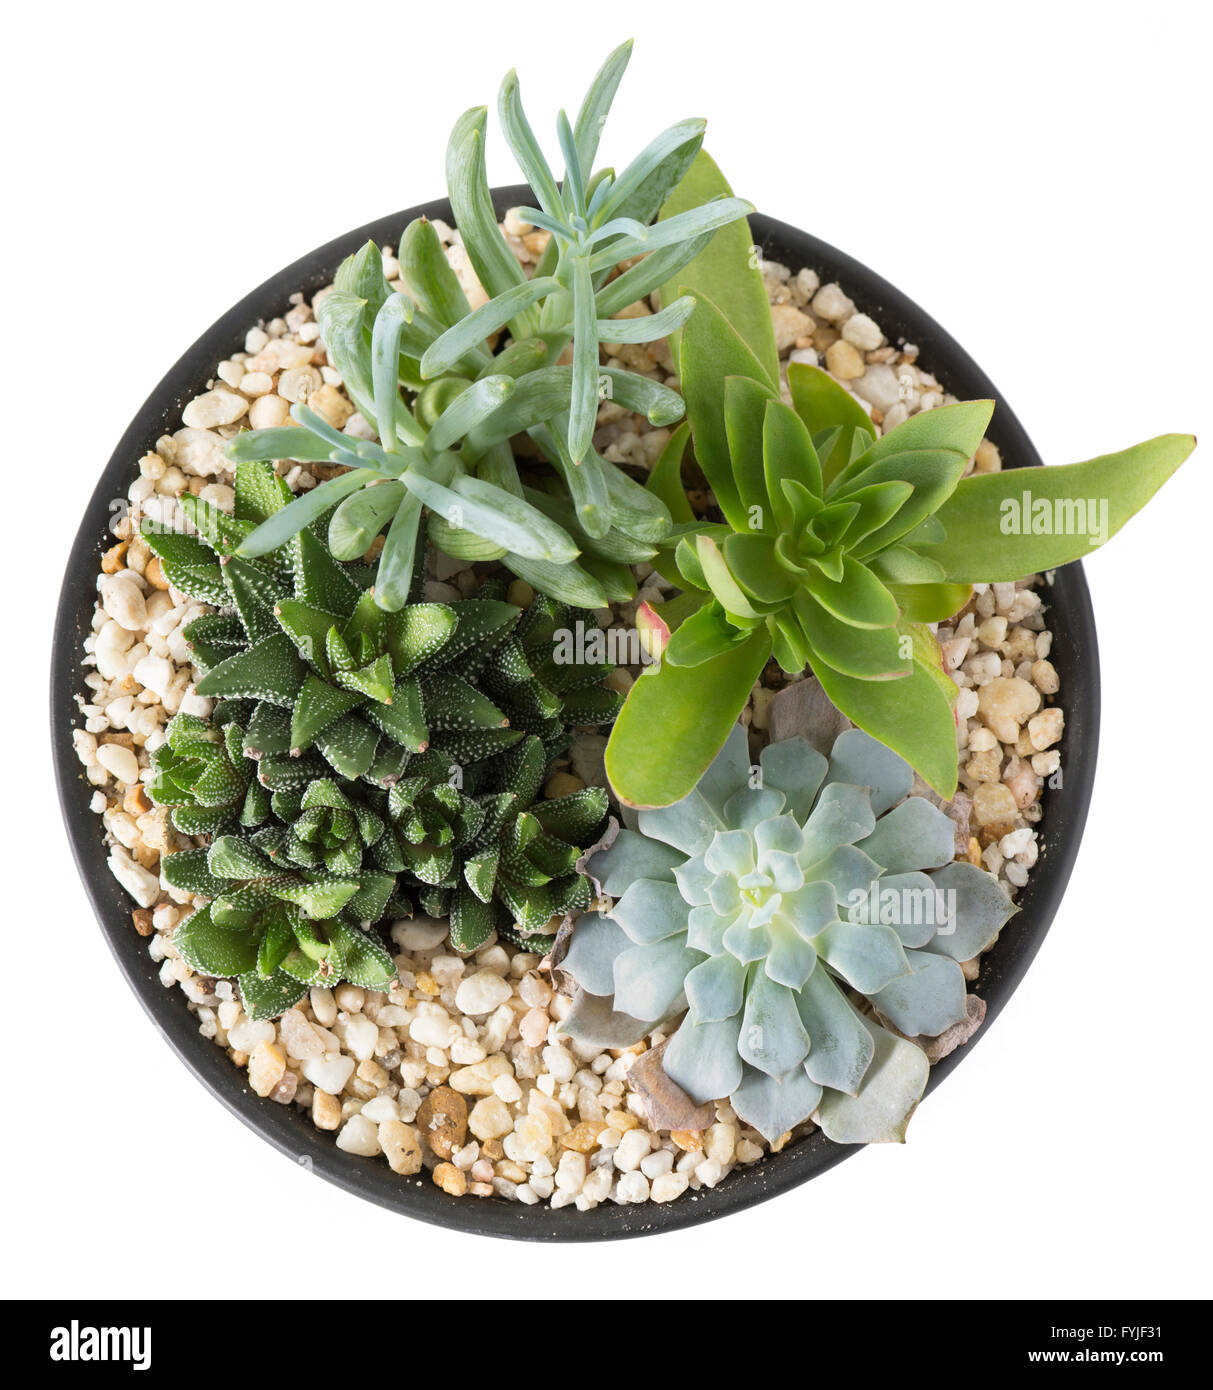 Overhead view of an indoor plant garden with succulent